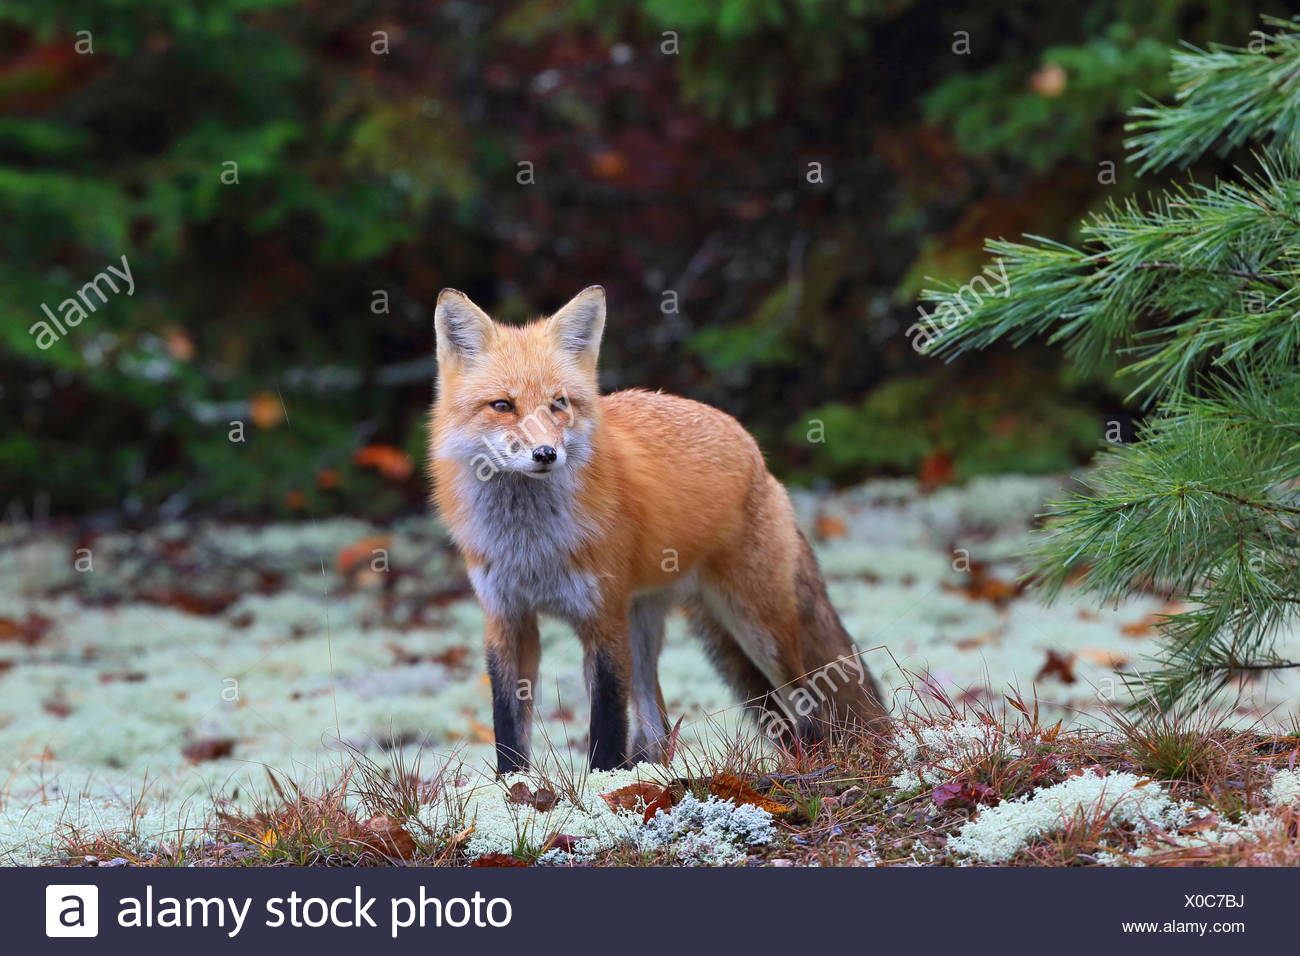 red fox (Vulpes vulpes), stands at forest edge, Canada, Ontario, Algonquin Provincial Park - Stock Image